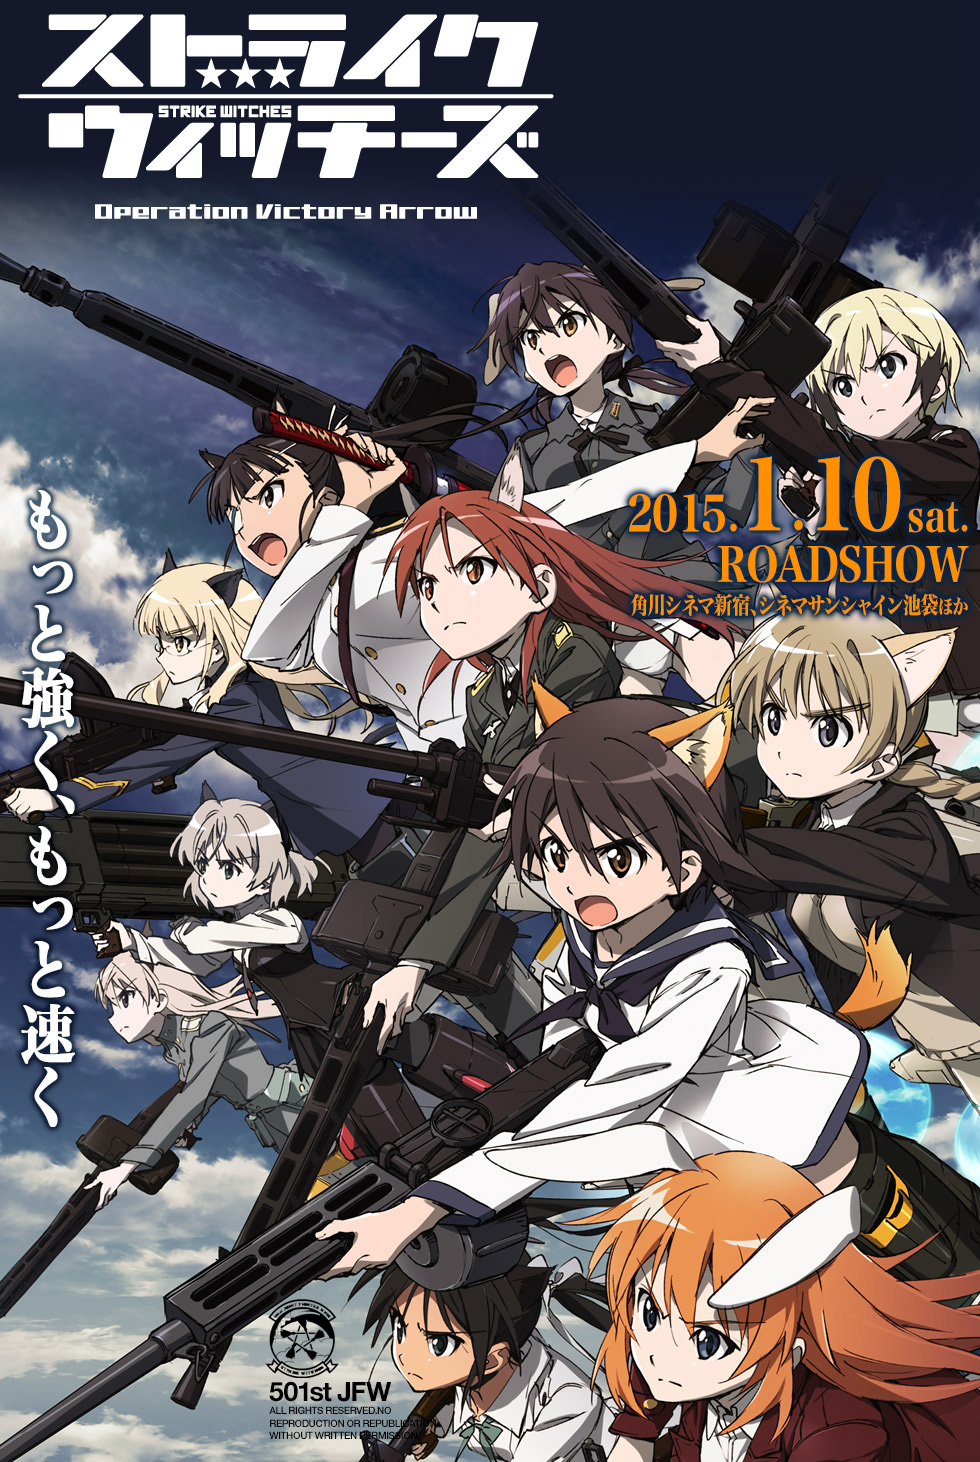 Strike-Witches-Victory-Arrow-Vol-2-Visual